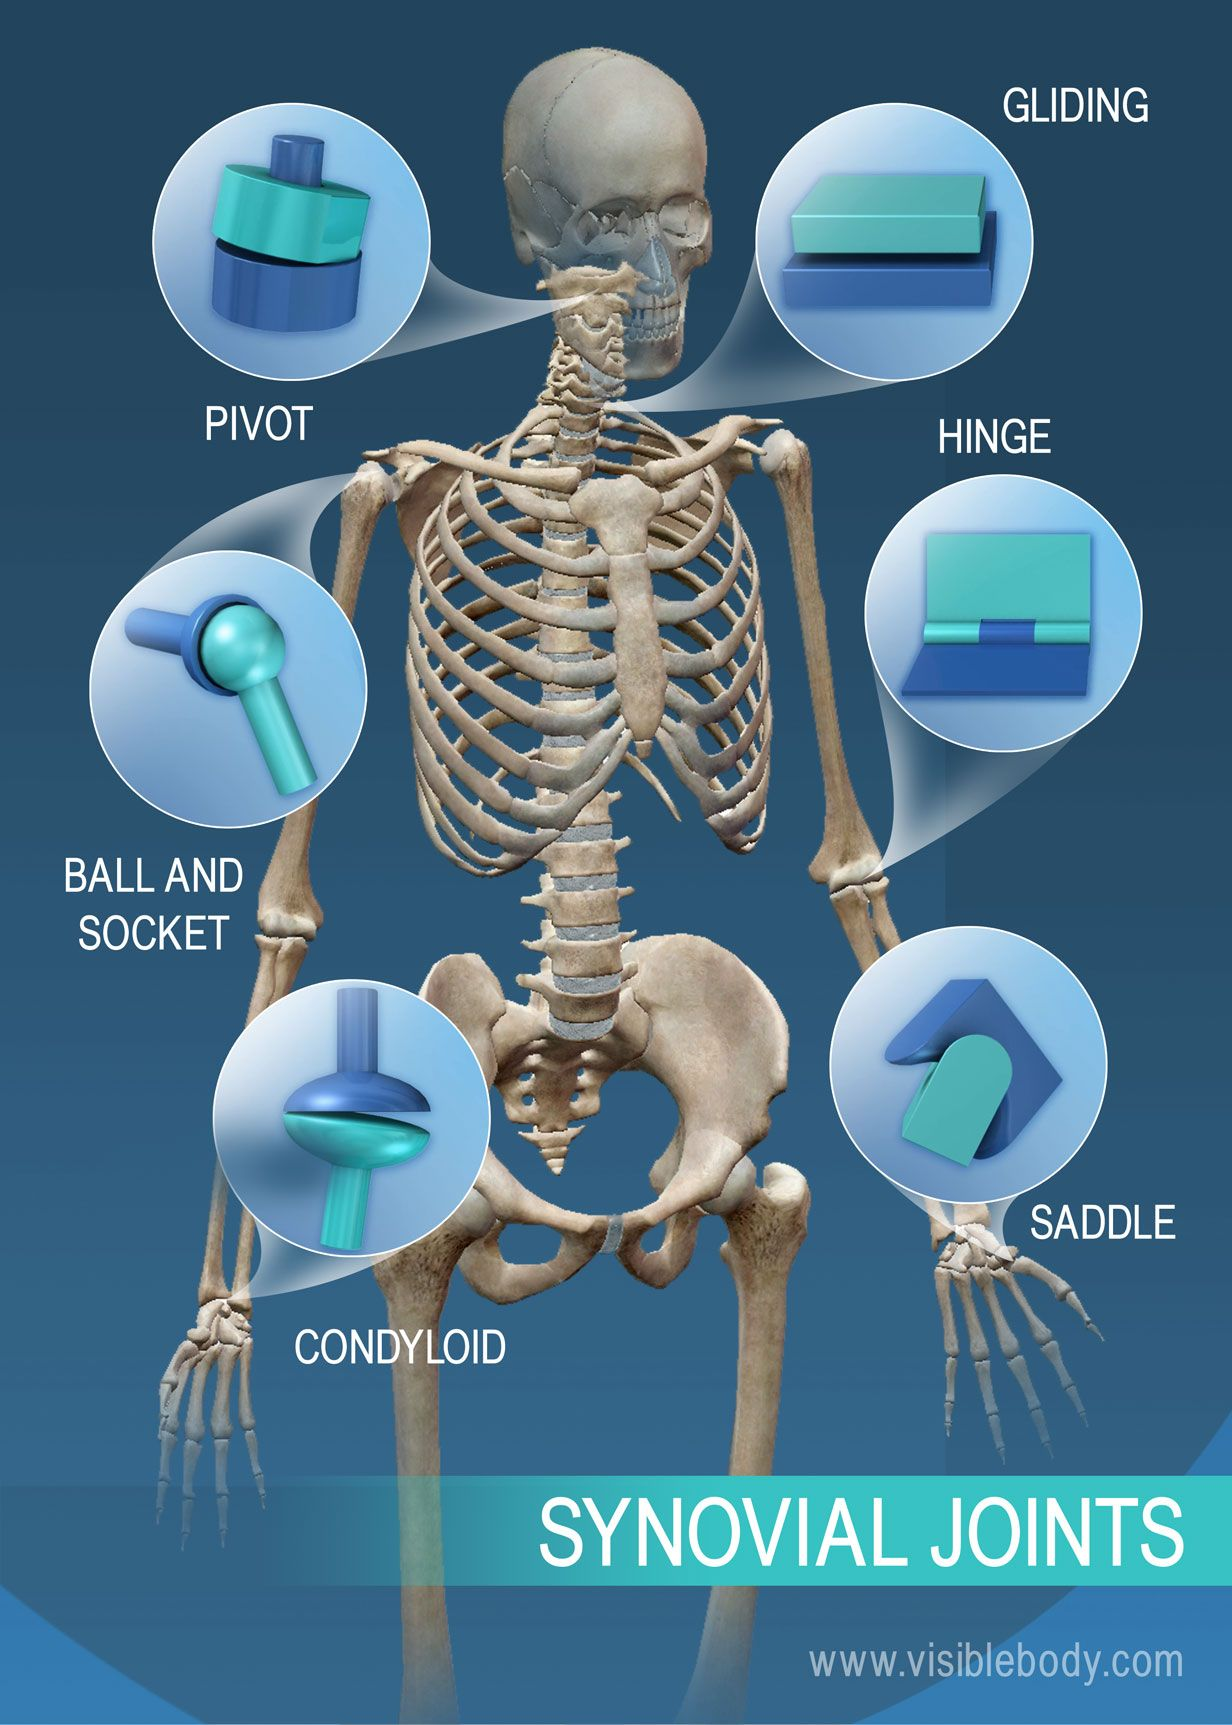 The Range Of Motion In Synovial Joints Pivot Ball And Socket Condyloid Saddle Hinge And